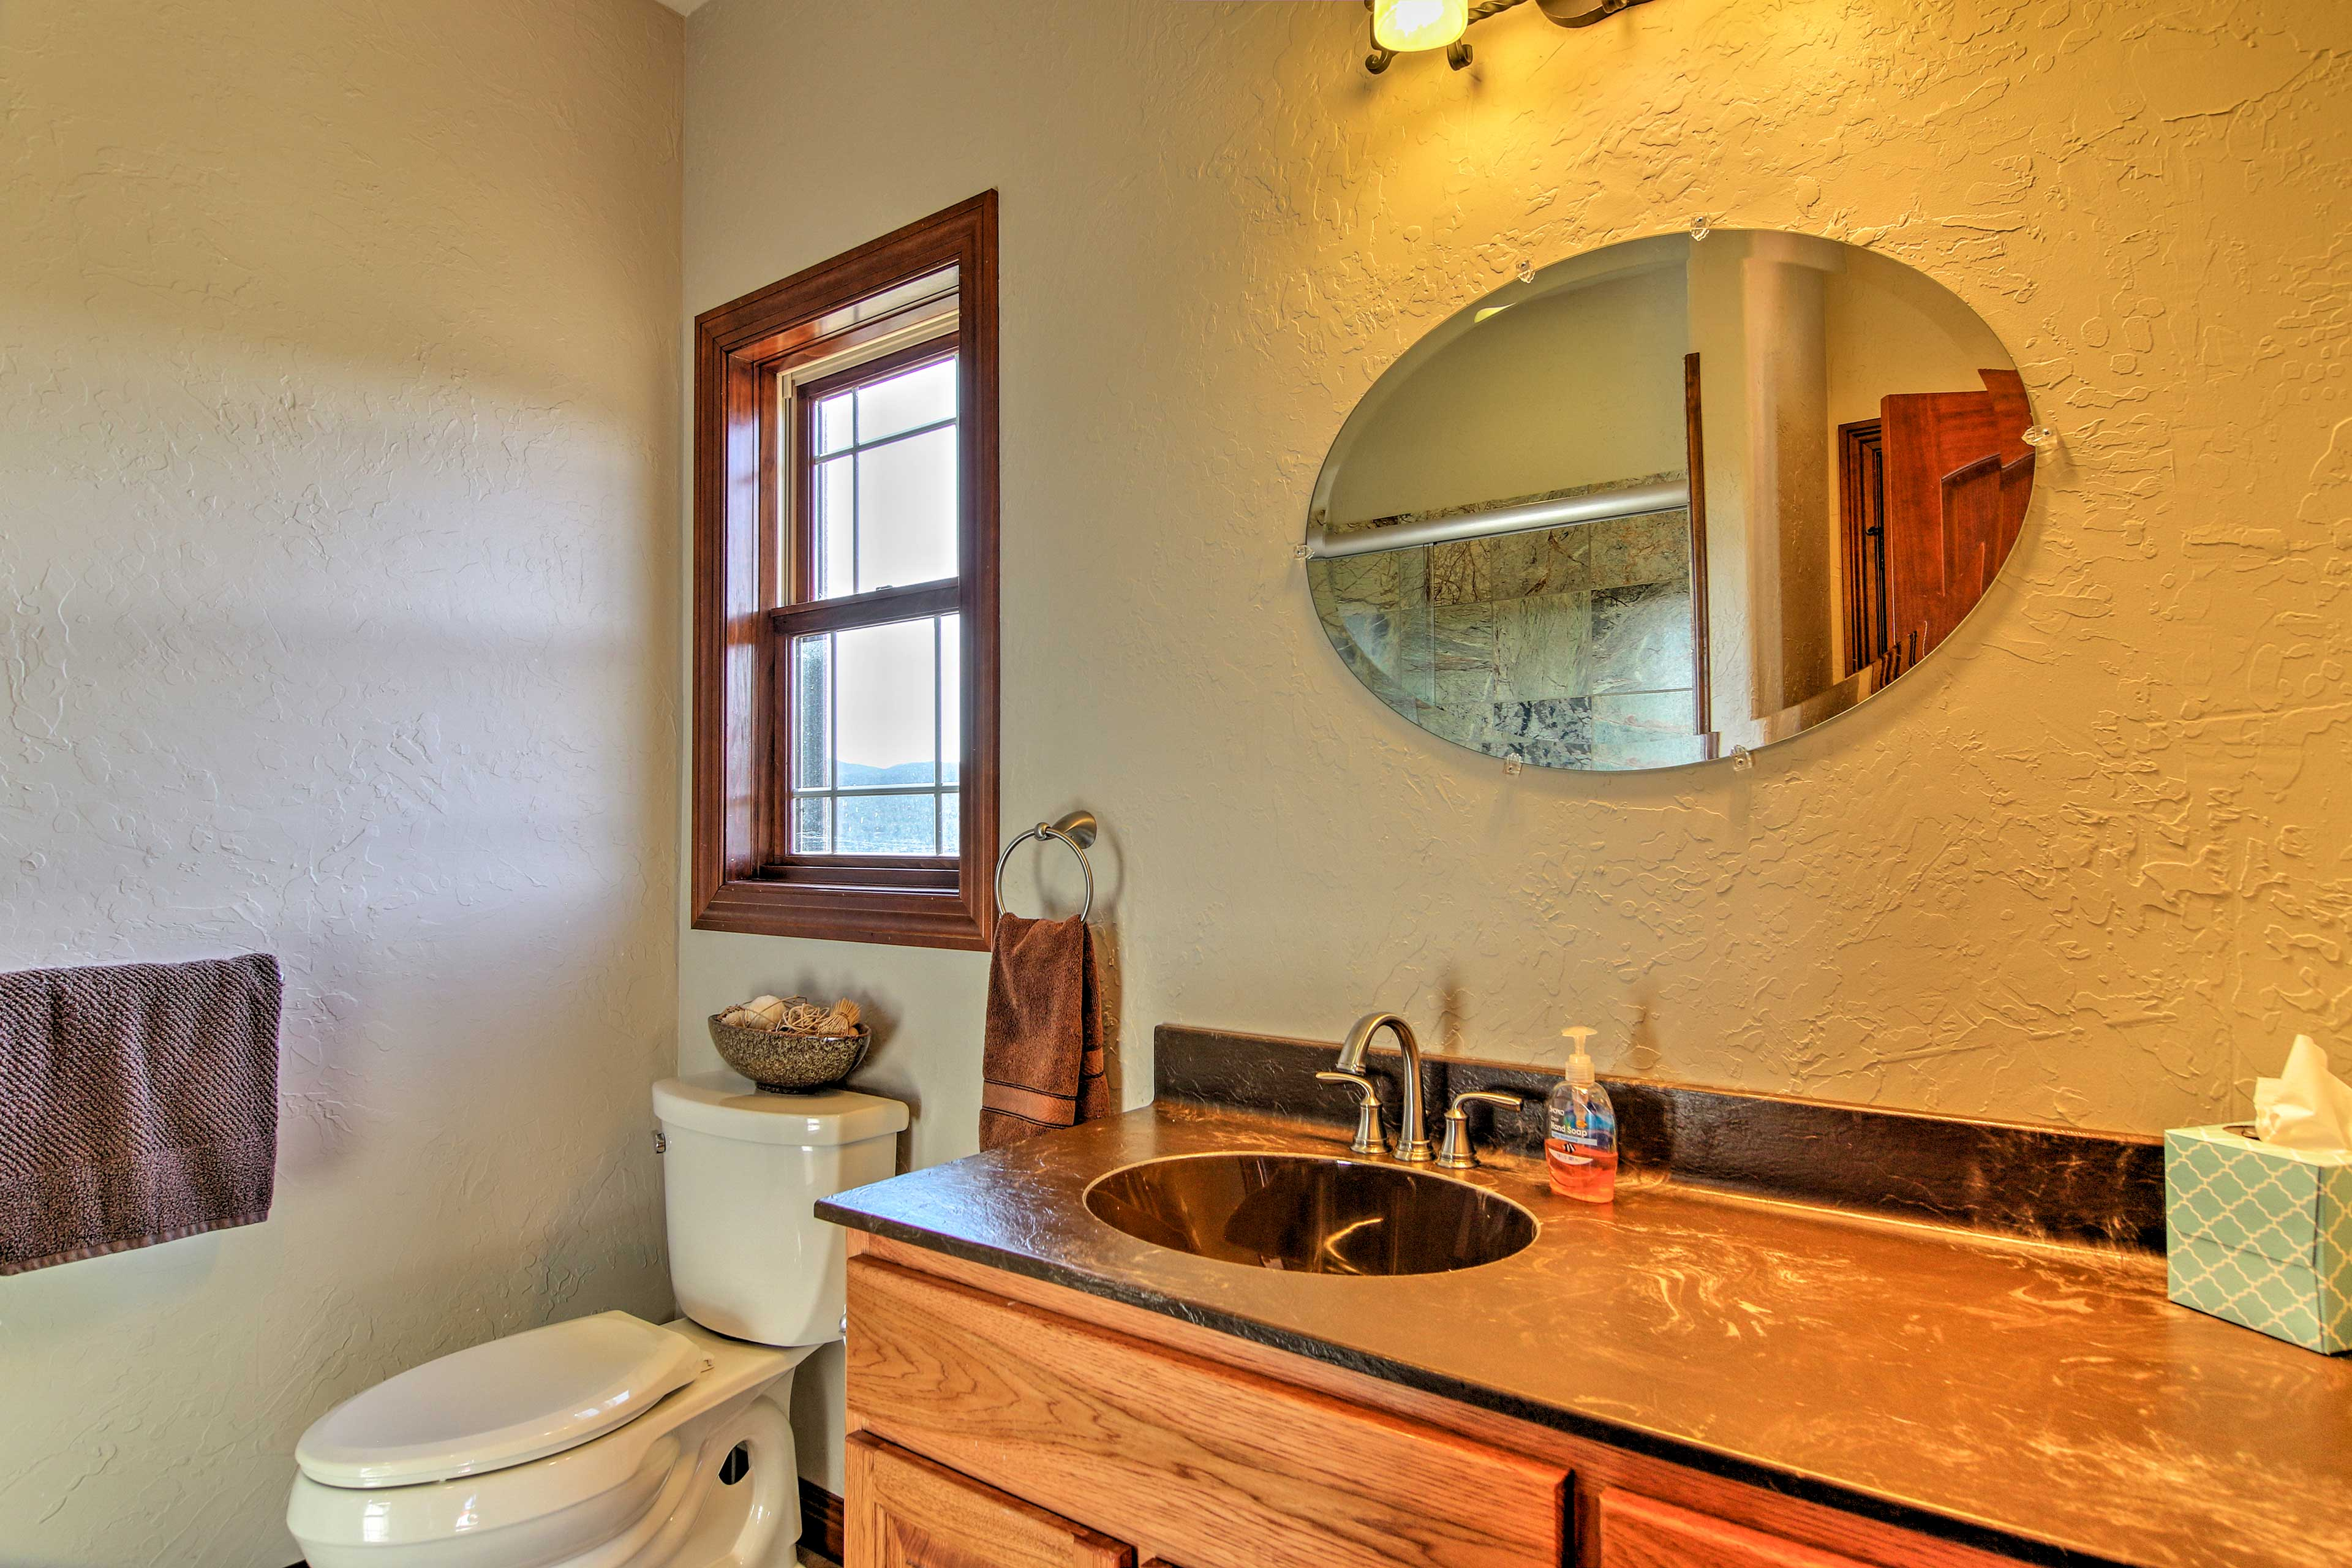 With 4.5 baths, everyone can stick to his-or-her morning routine.